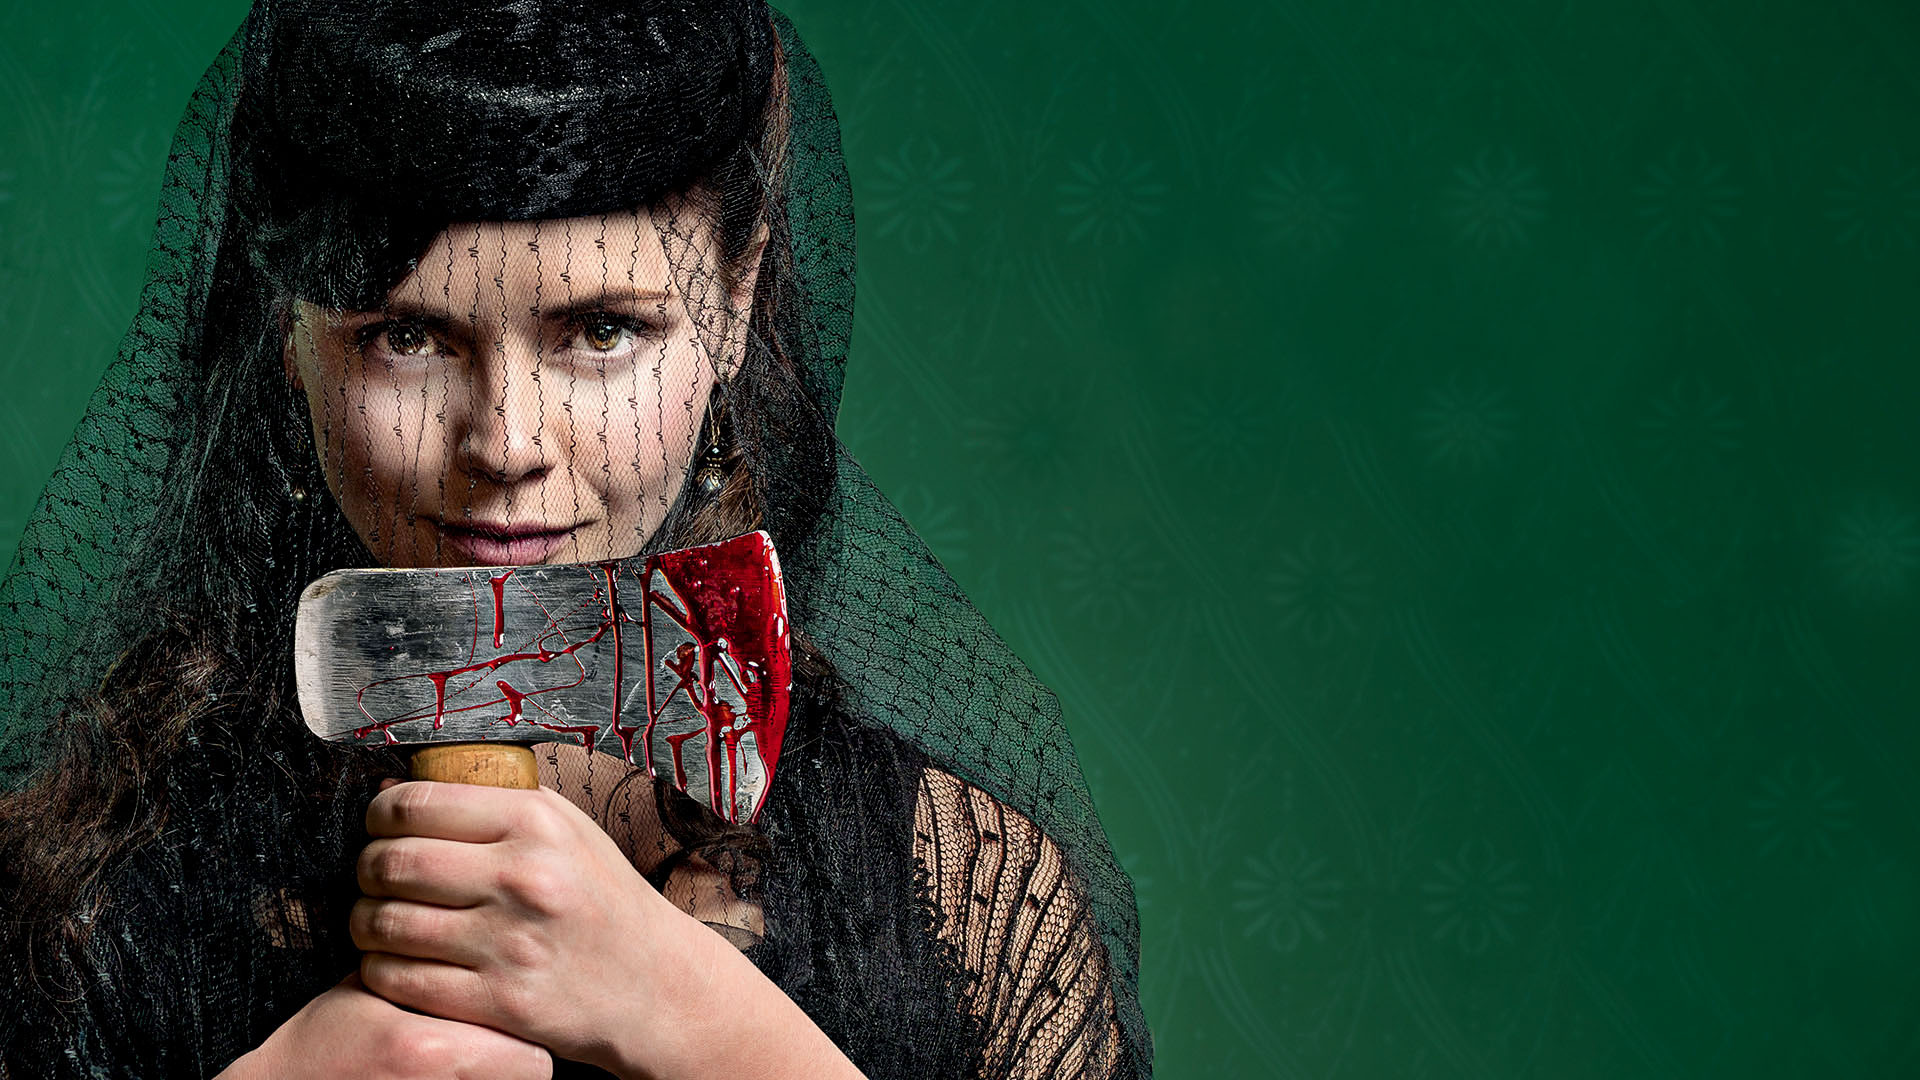 Show The Lizzie Borden Chronicles